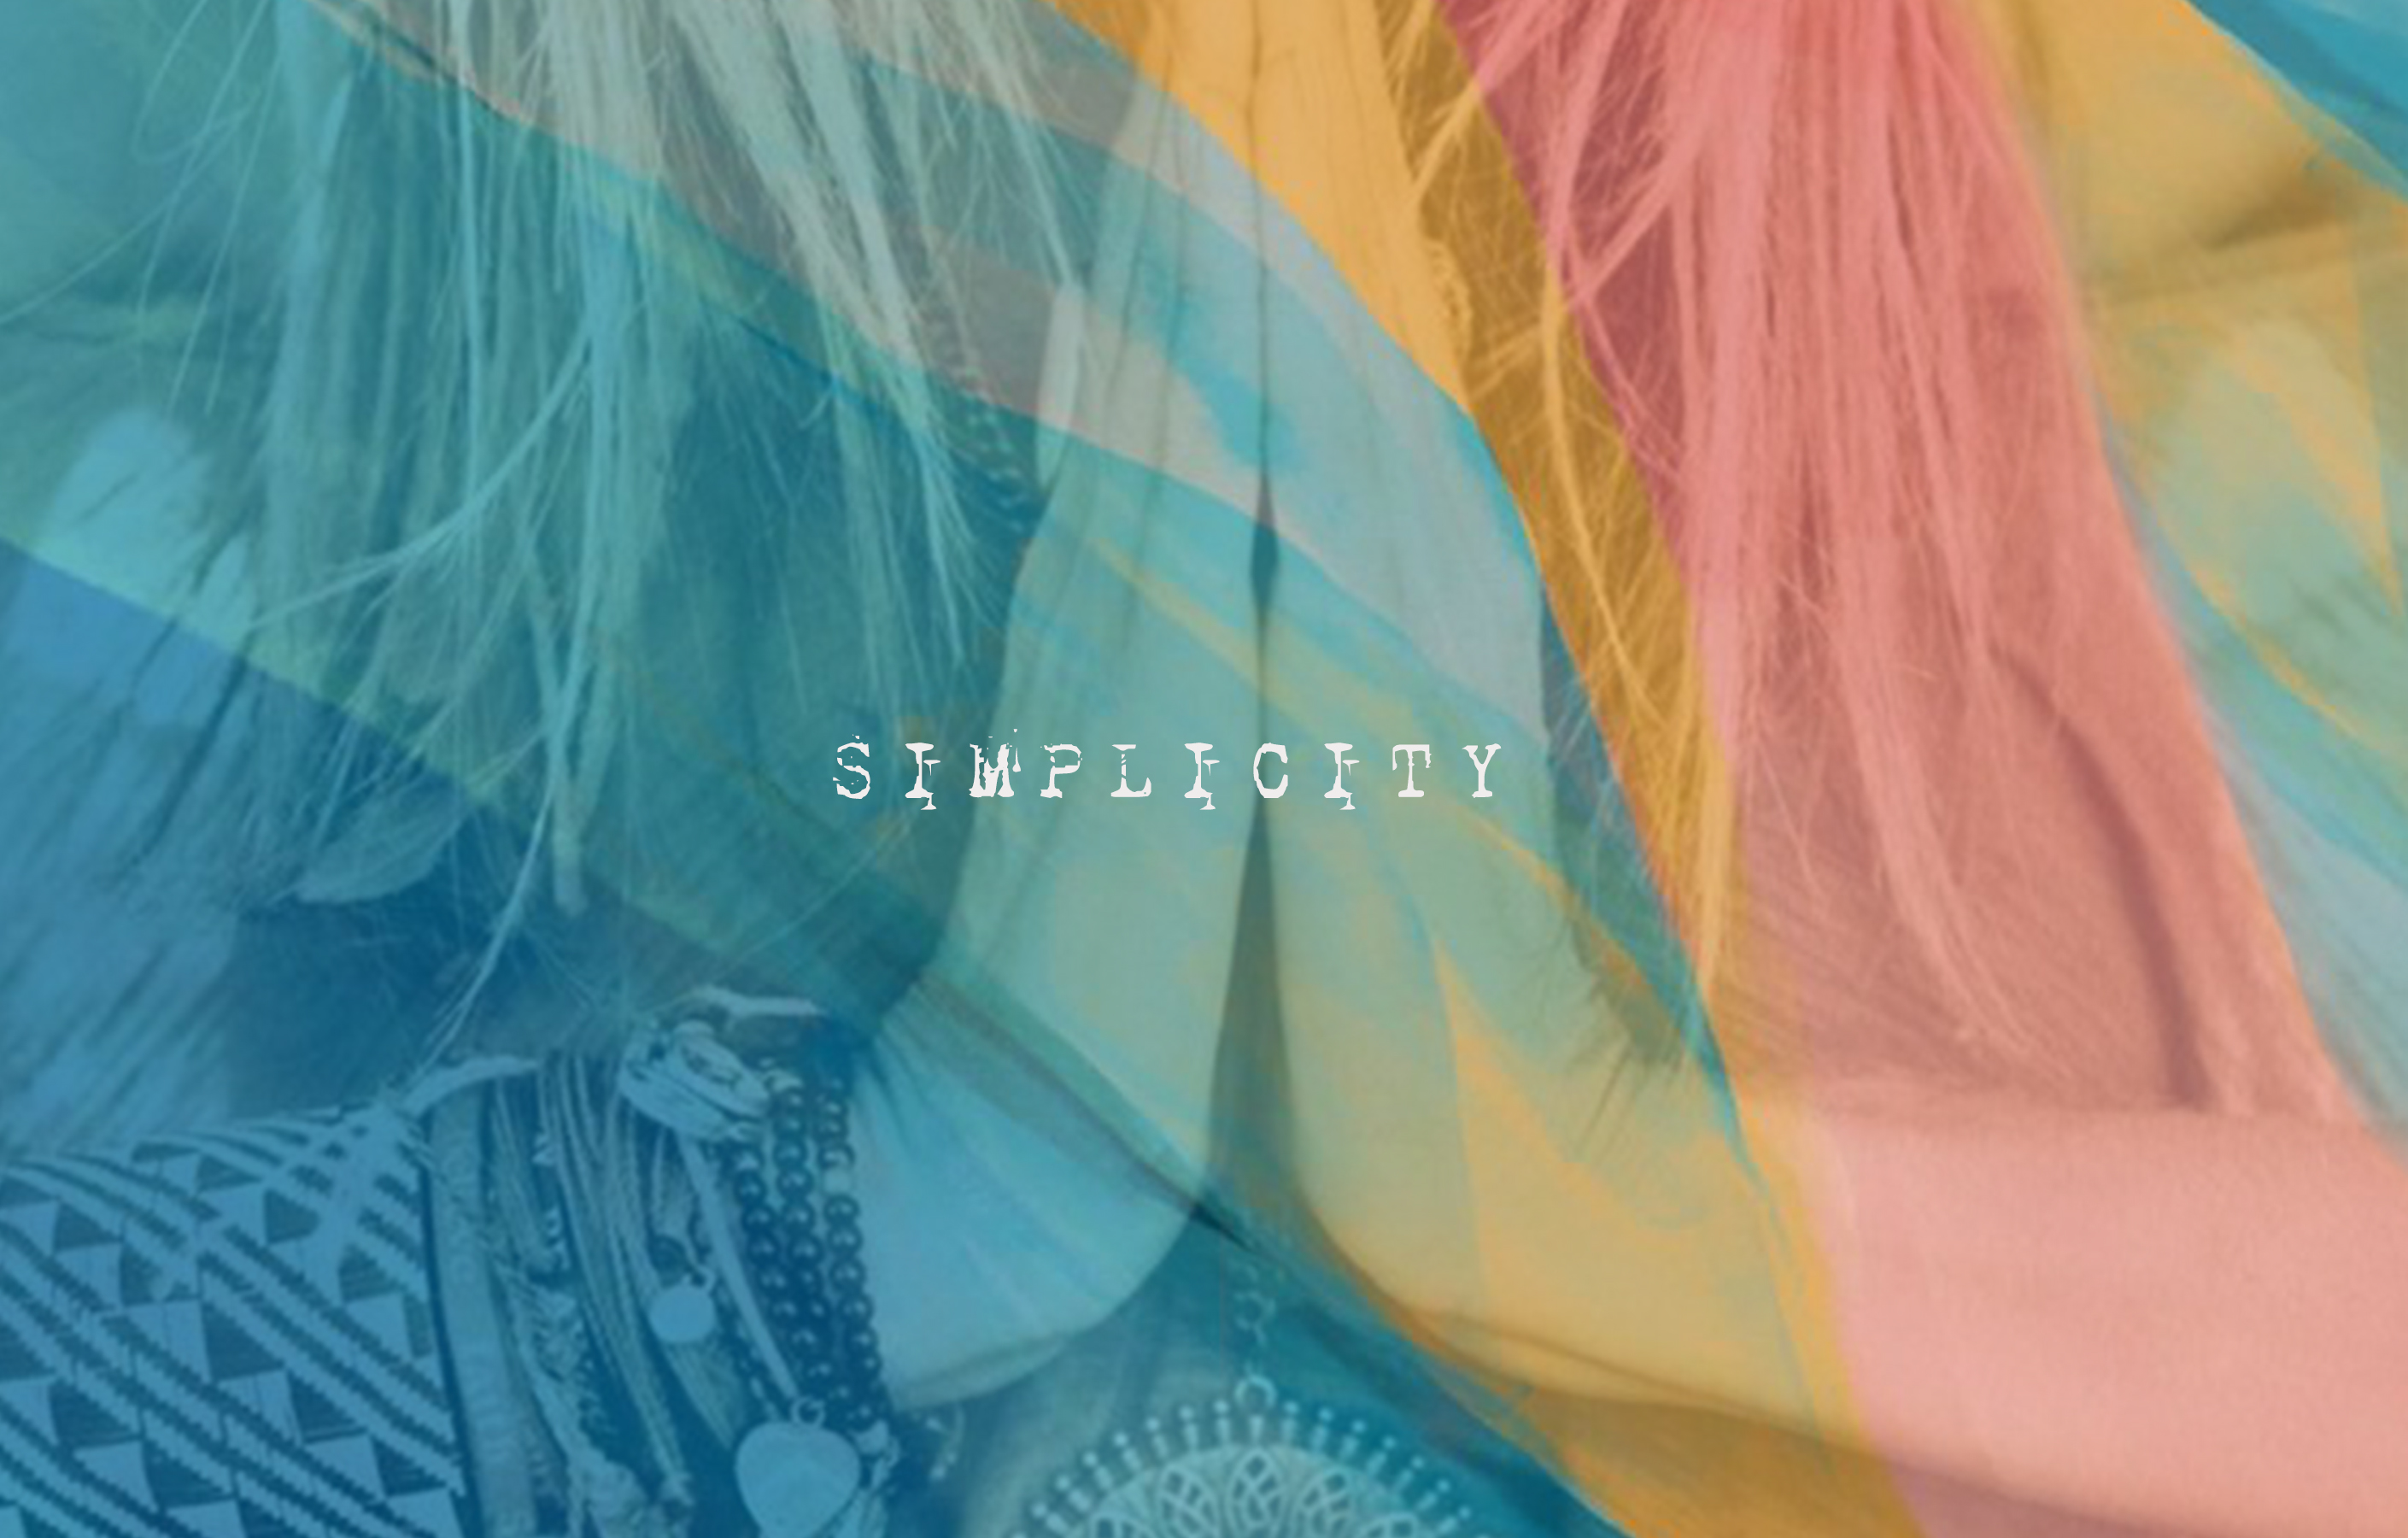 Simplicity: 5 steps to healing up